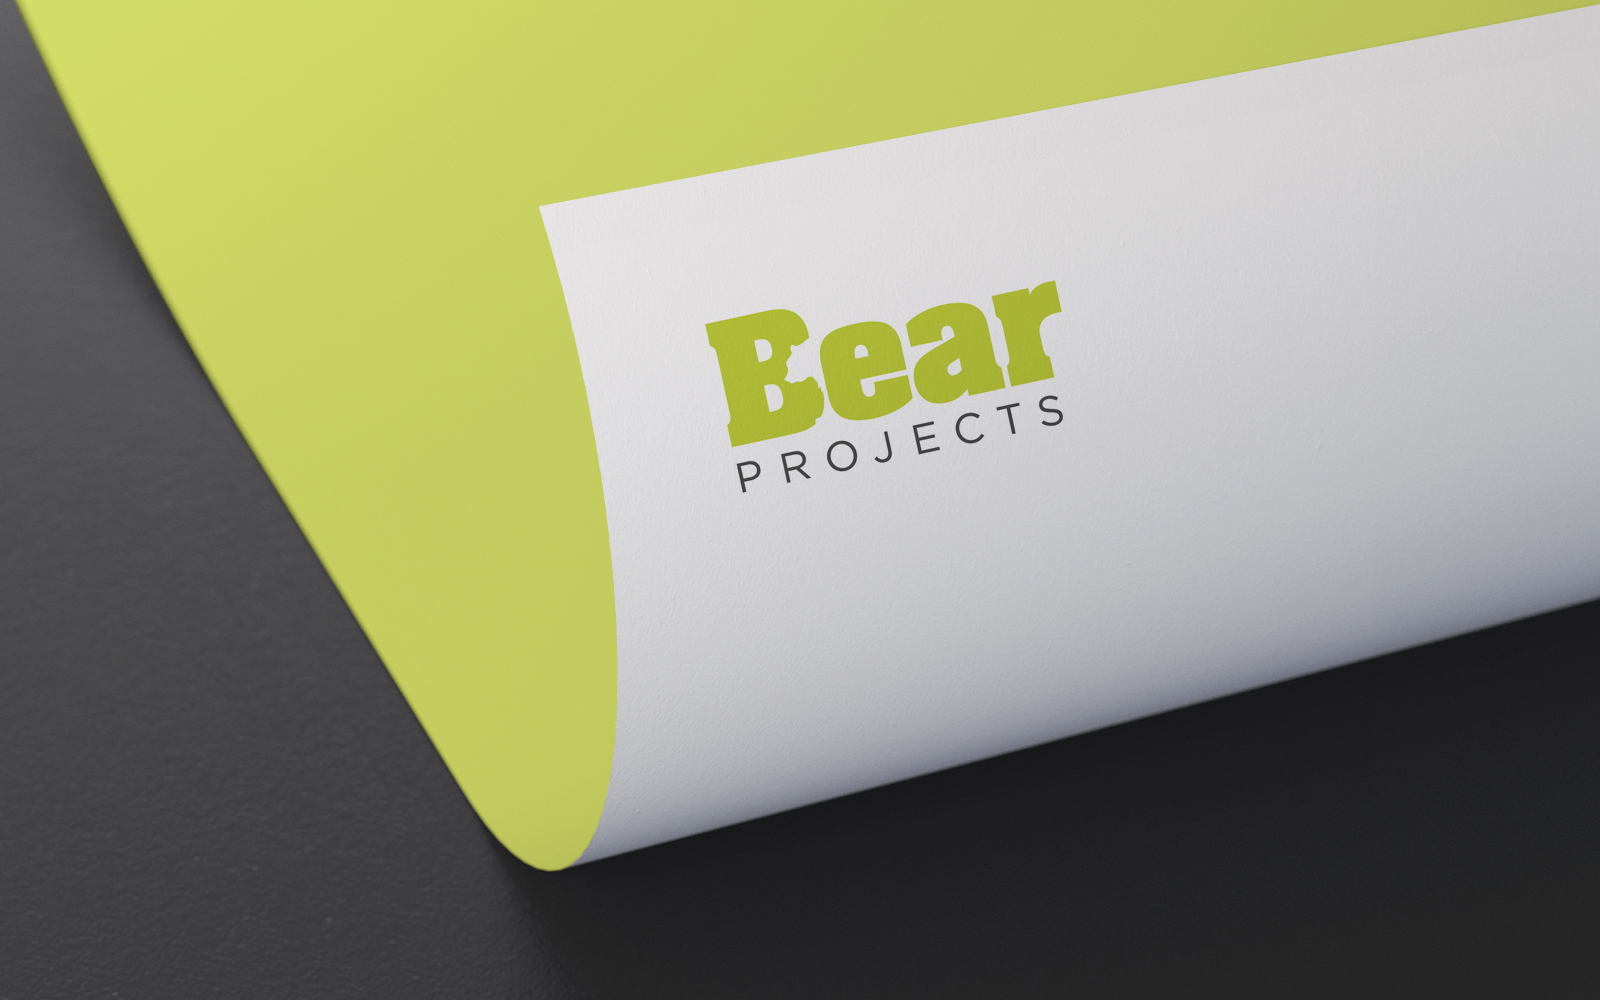 Bear Projects